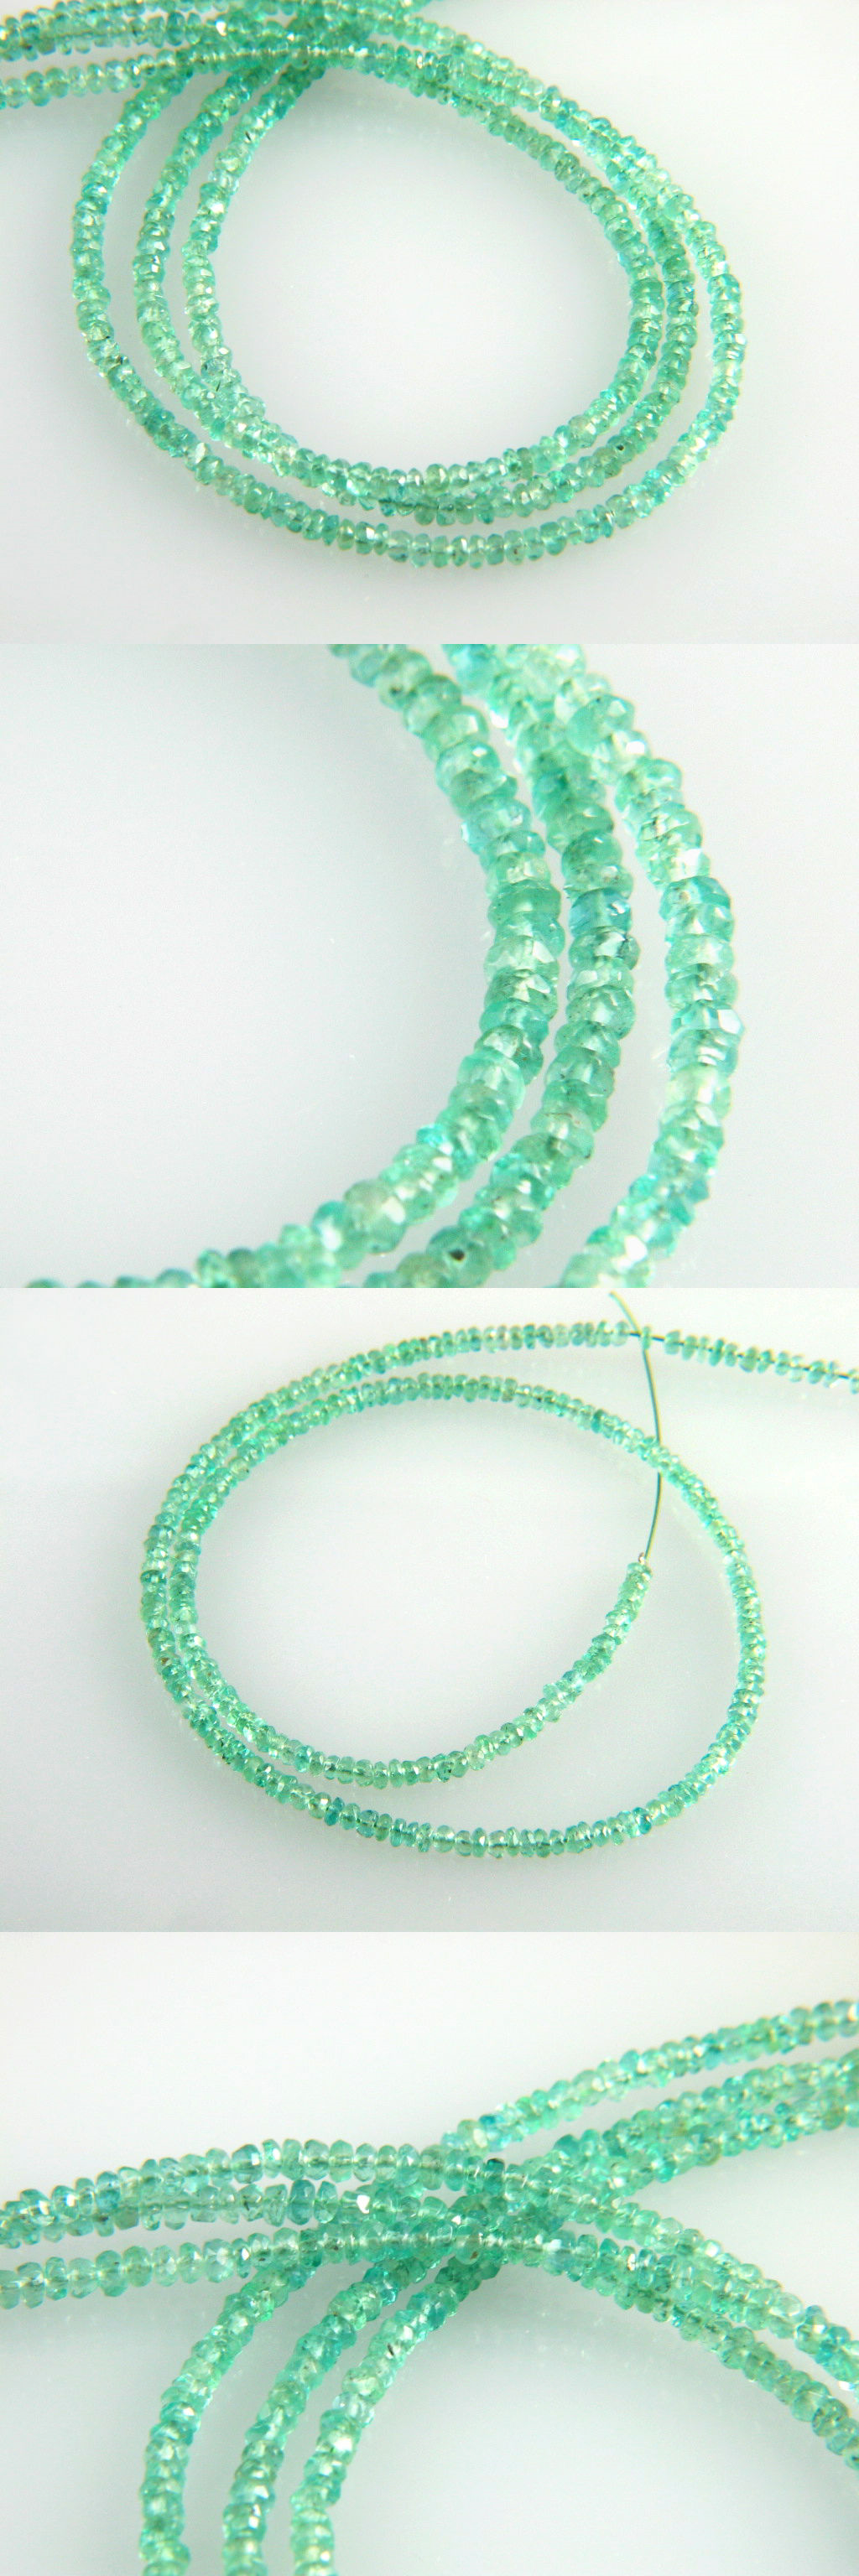 Stone 179273: Natural Untreated Colombian Emerald Faceted Rondelle Beads 2.2-2.5Mm - 7 Strand -> BUY IT NOW ONLY: $64 on eBay!